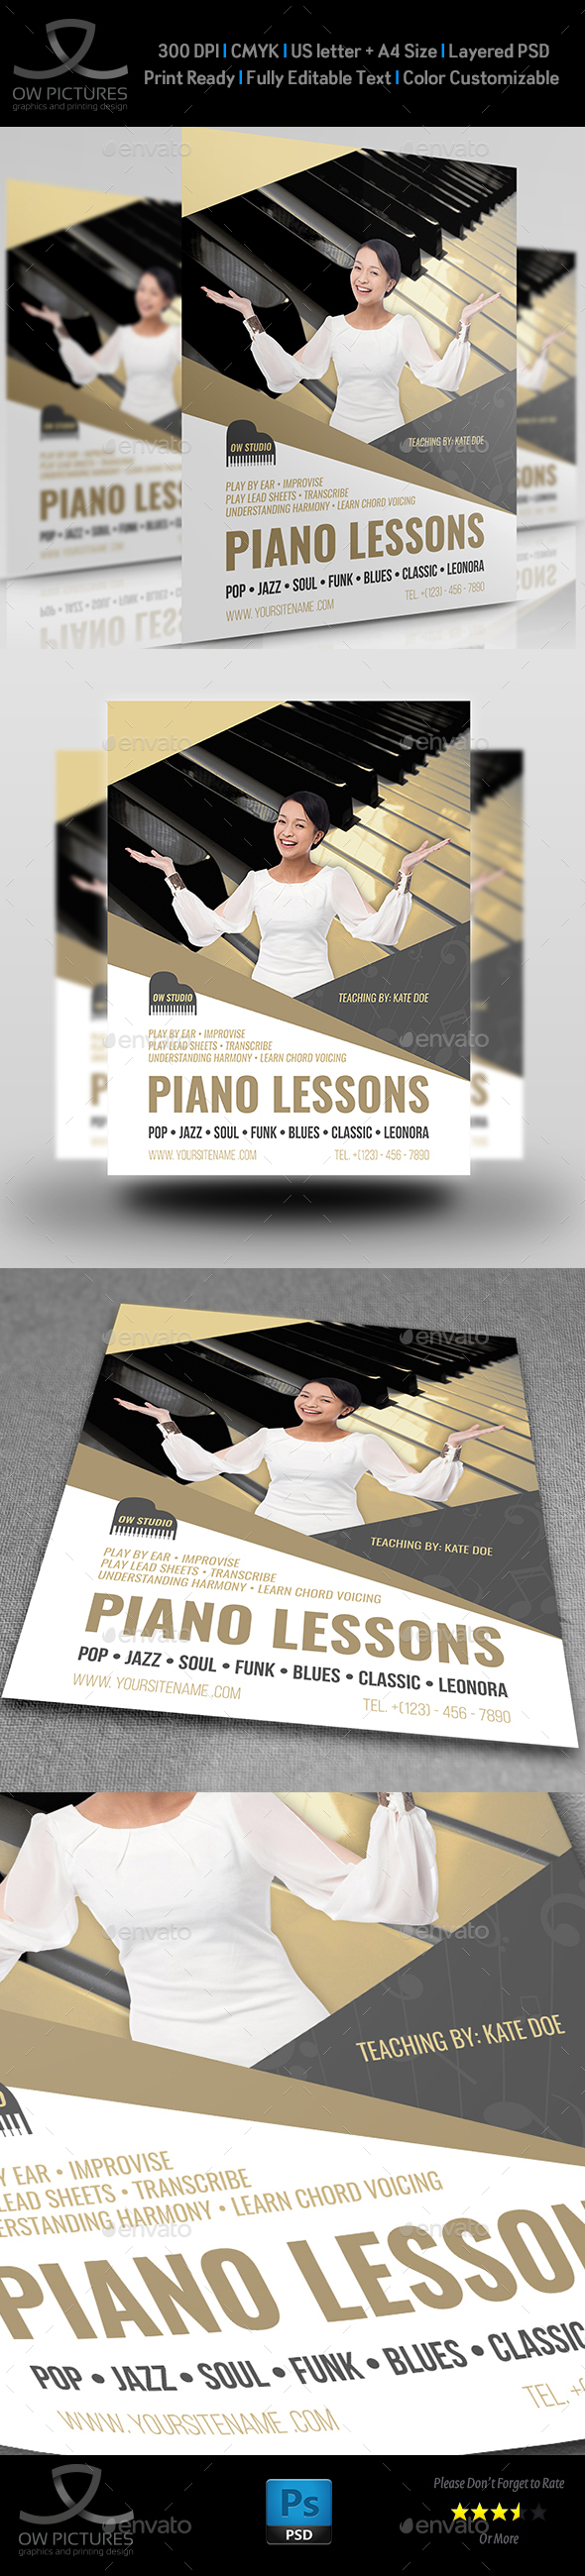 Piano Lessons Flyer Template - Commerce Flyers